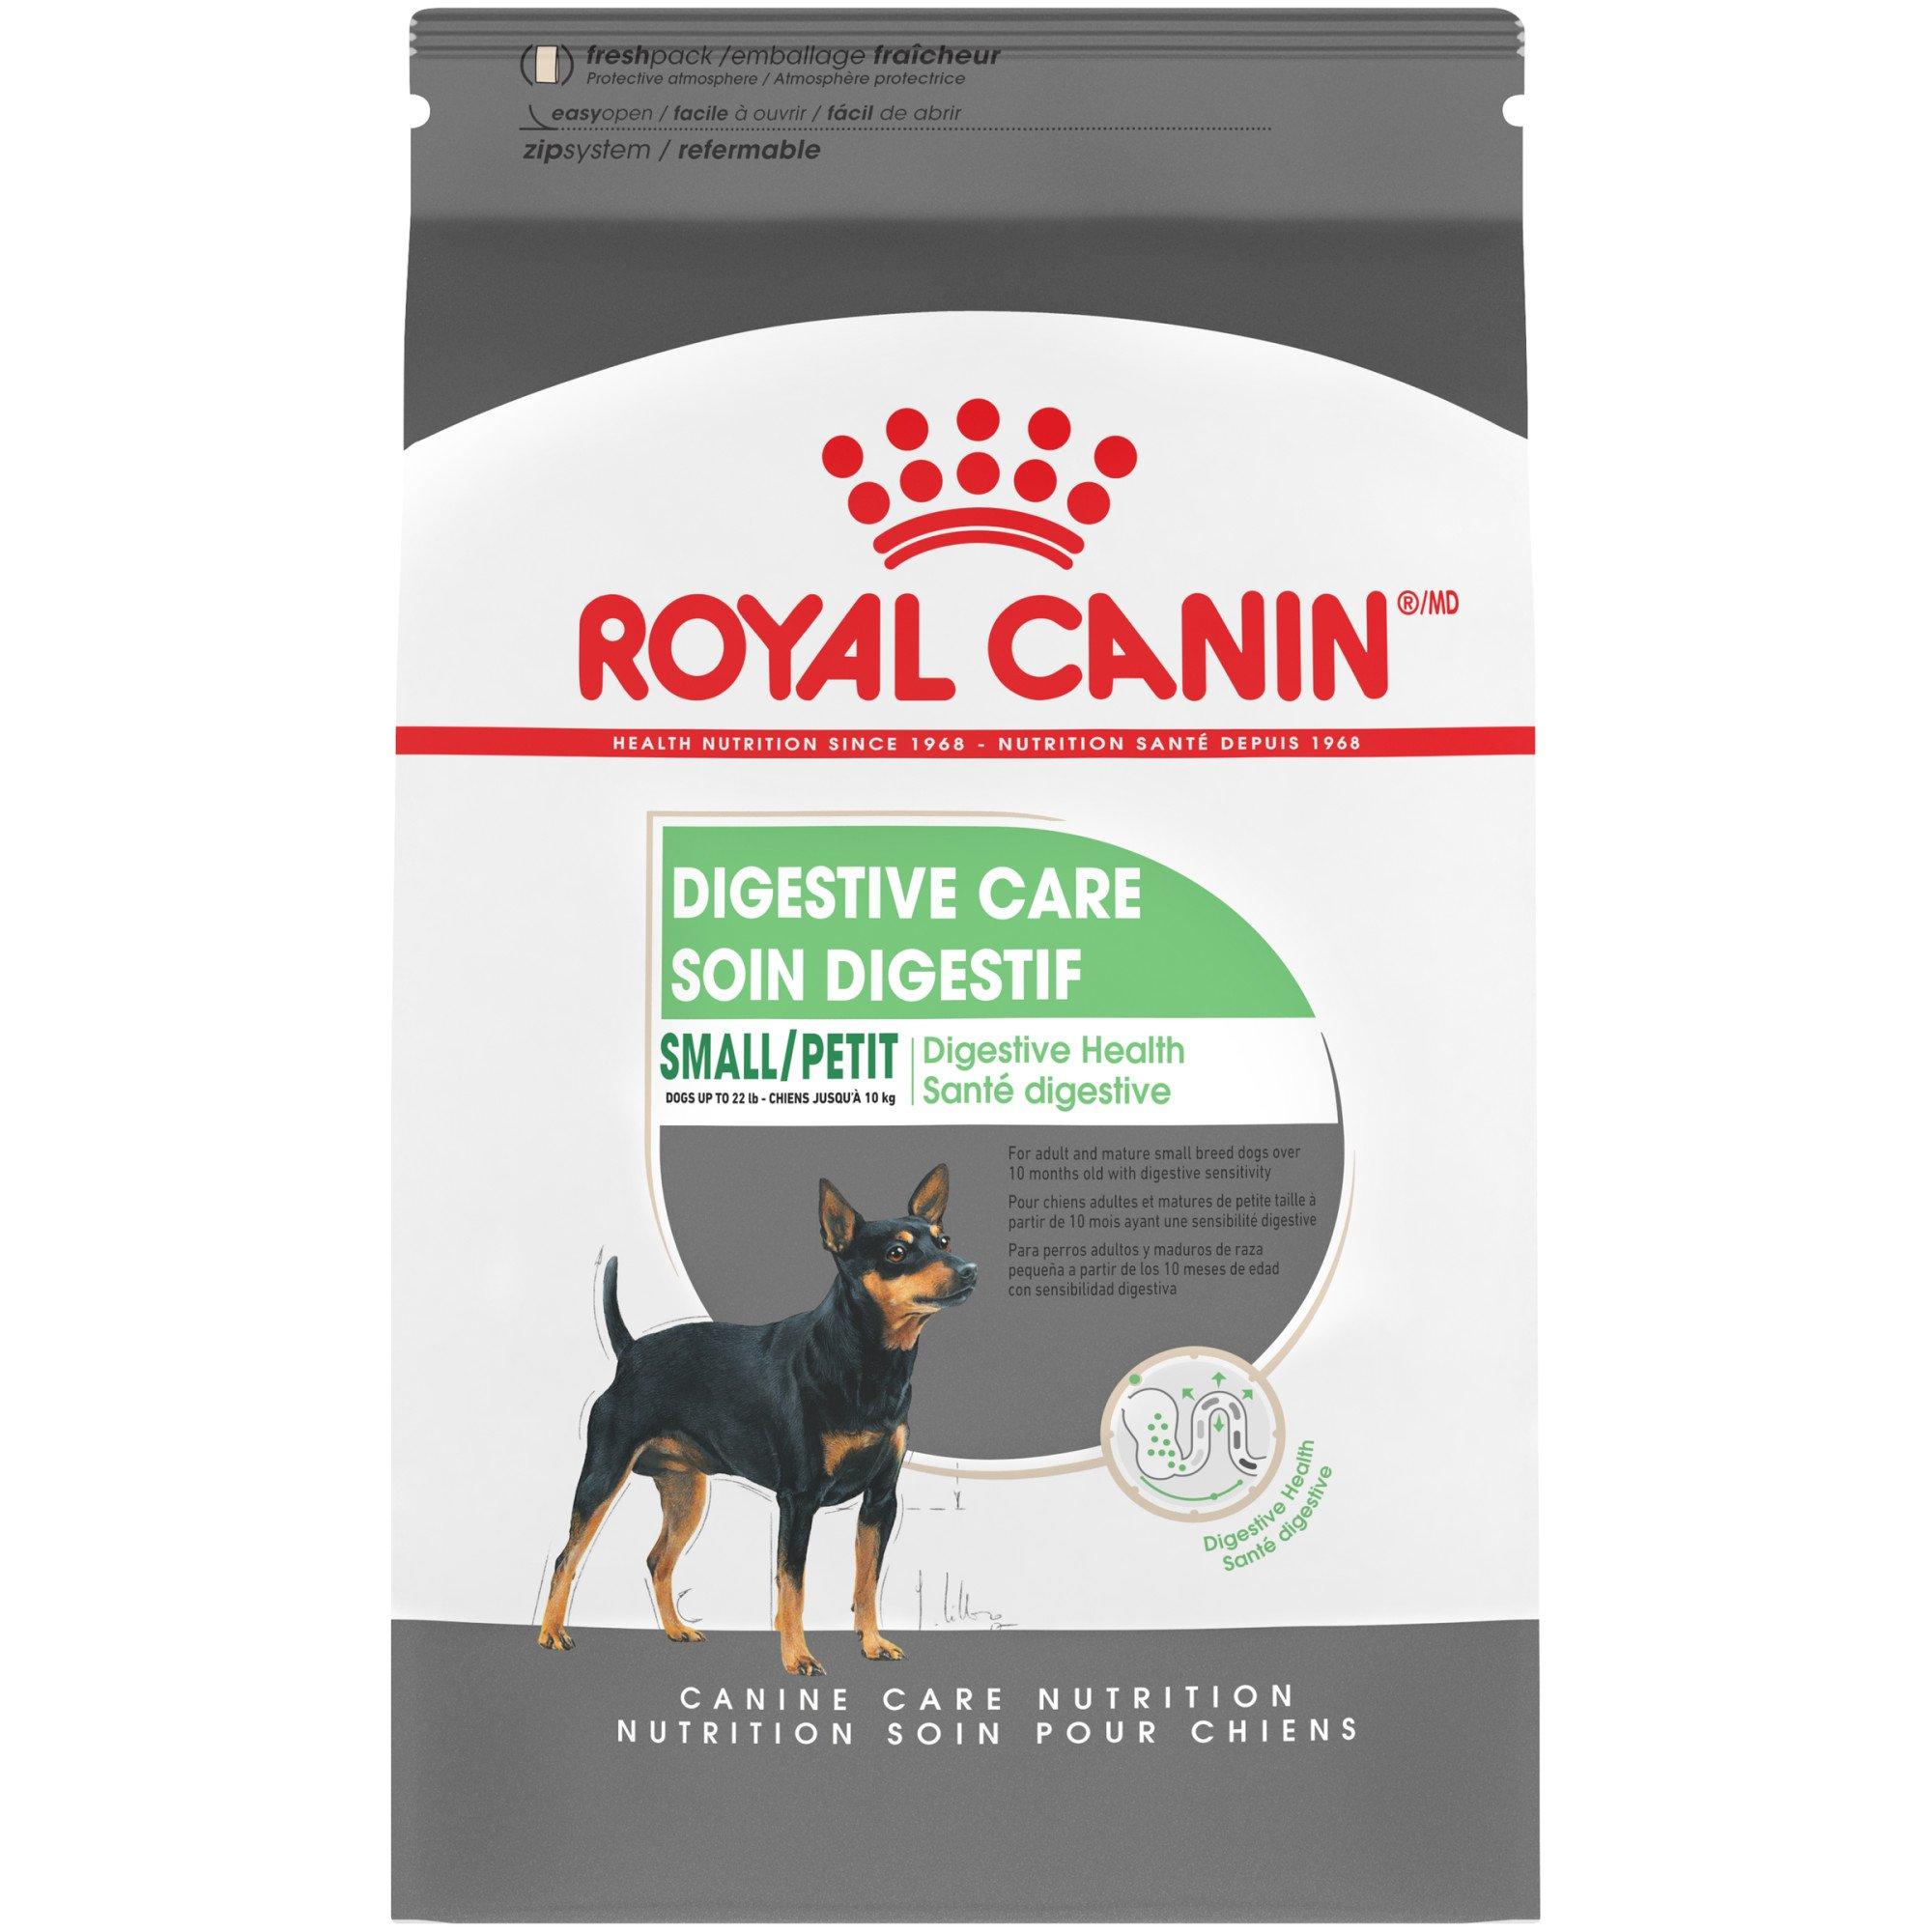 Royal Canin Size Health Nutrition Mini Special Dry Dog Food, 3.5 lbs.